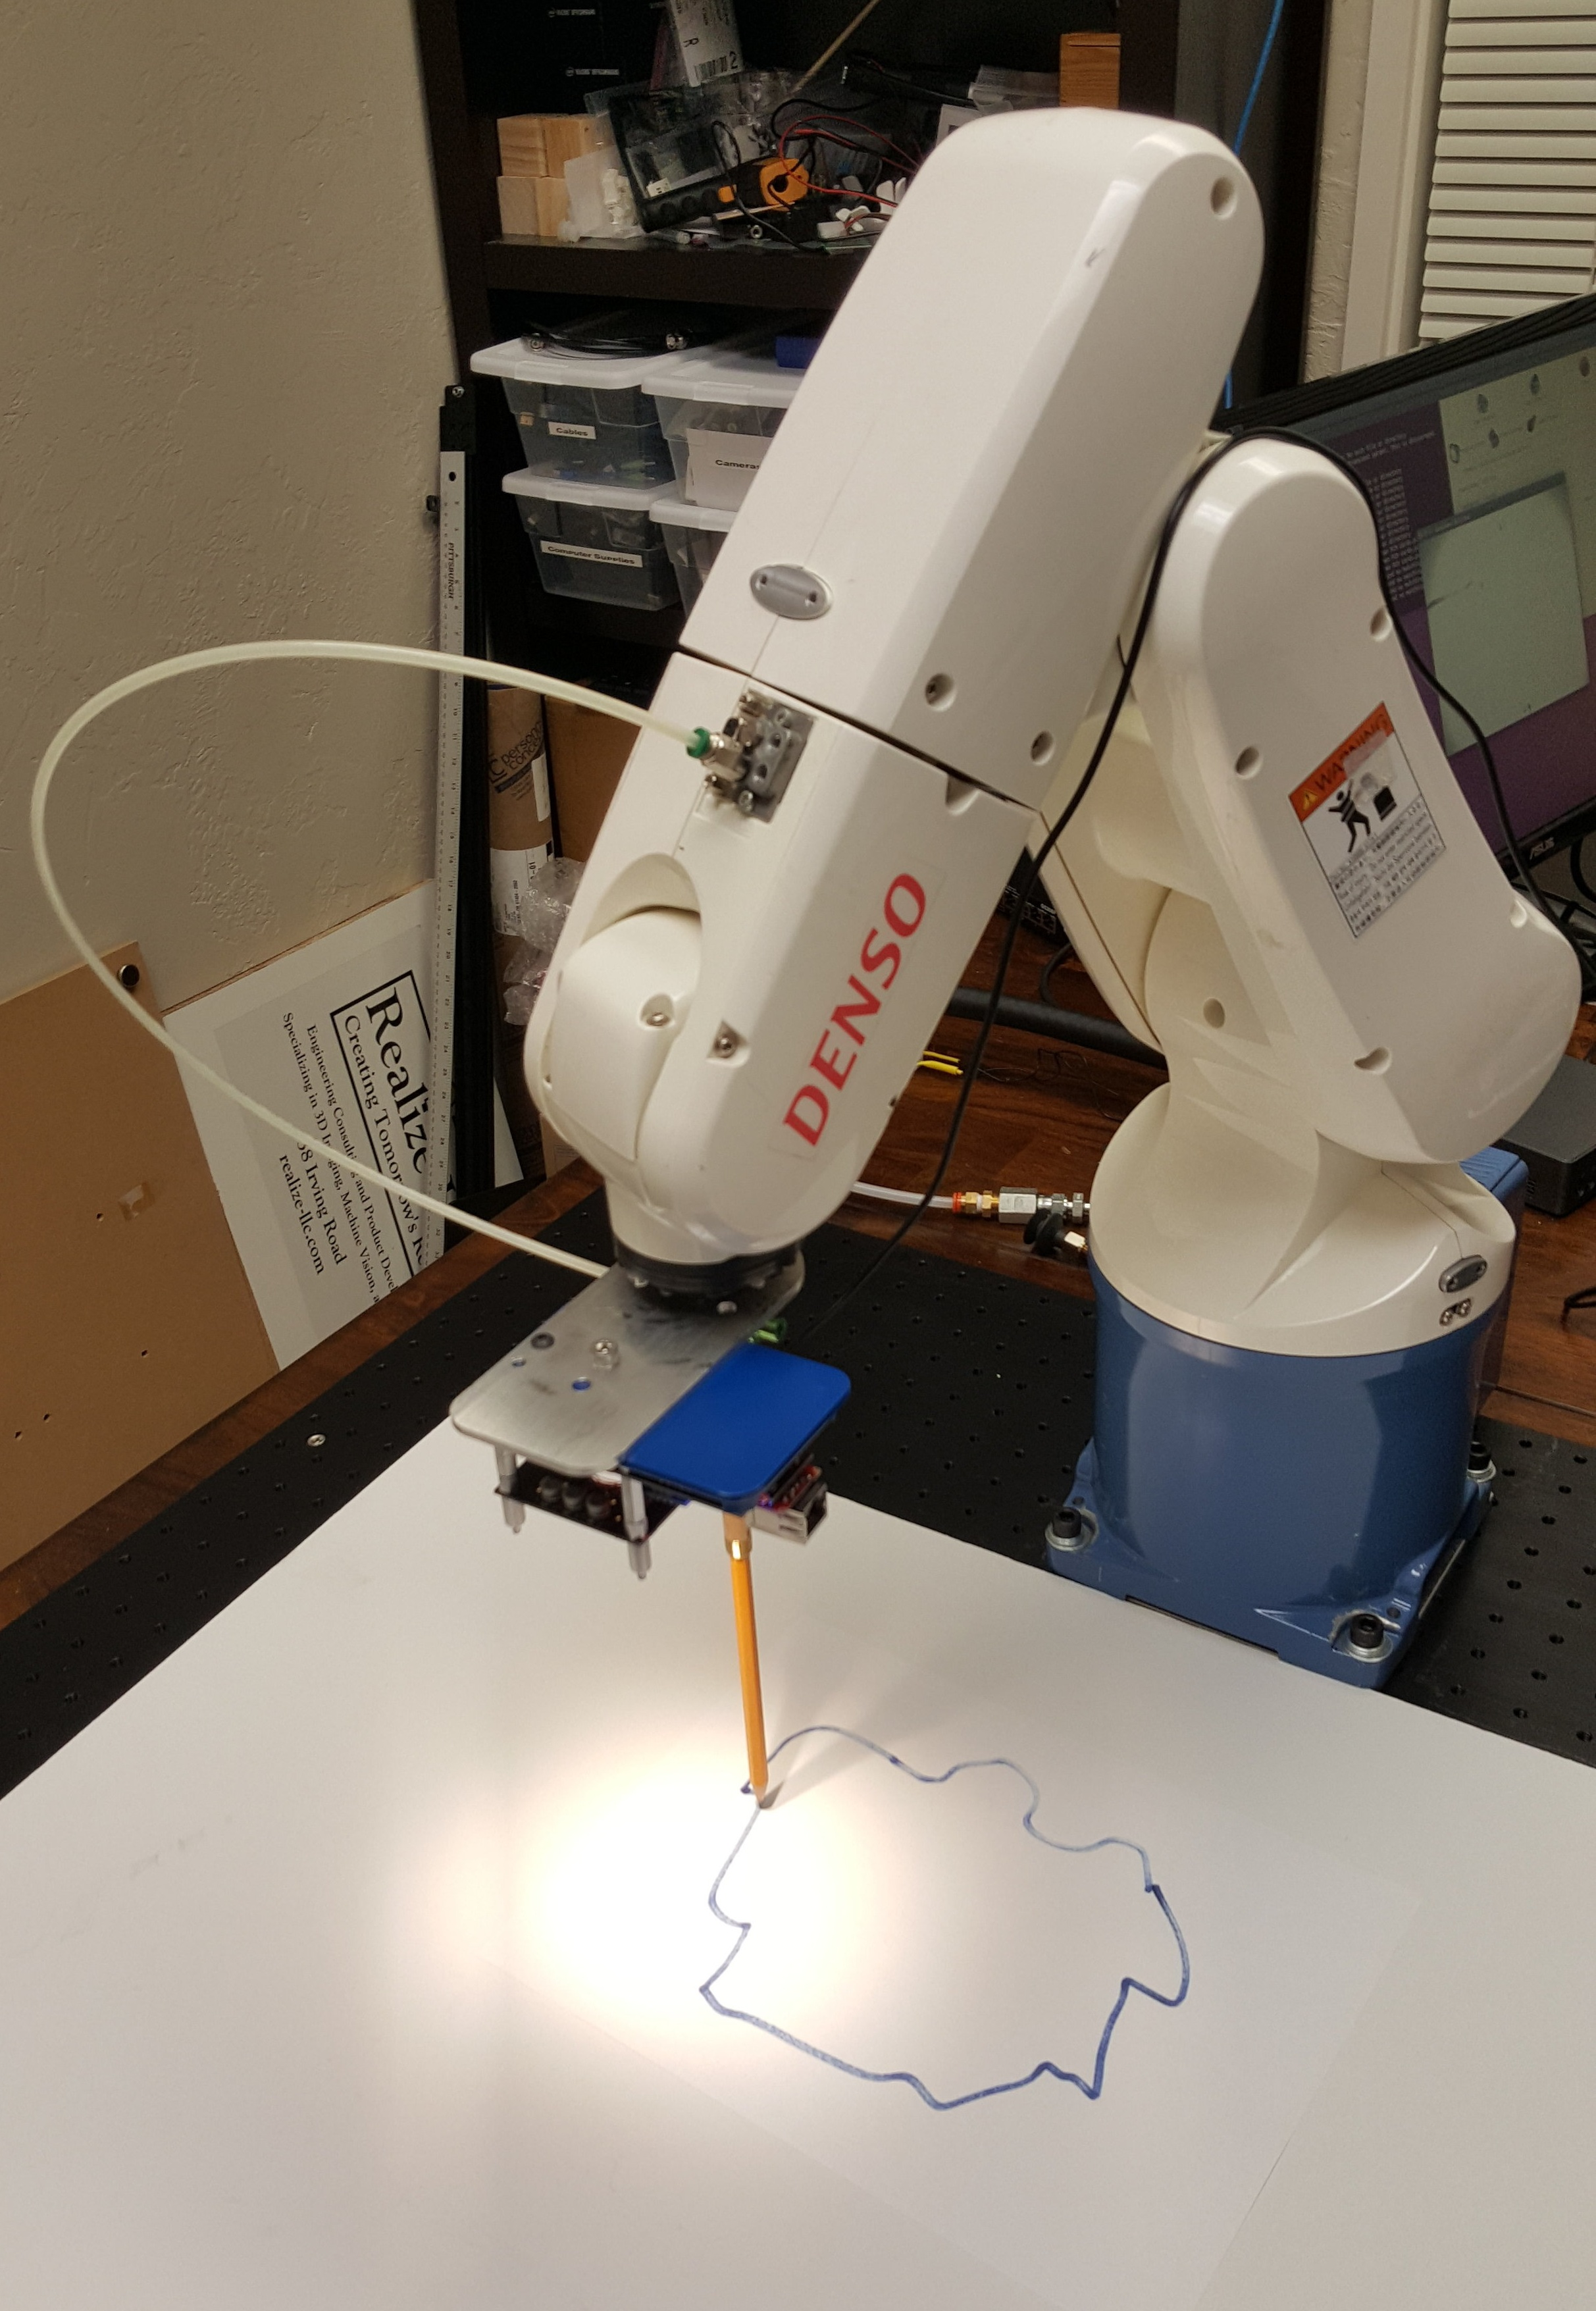 Following a Line   There are many applications that require following a templated line or pattern in order to cut a shape out of a piece of material. Rigid materials such as steel are fairly straightforward for traditional robots to follow a pattern.  But what happens if the material is flexible like  rubber ,  fabric , or  plastic ? What if it moves or deforms while being cut? That would require a vision system that can maintain its course even when things move a bit, like our  Vision-in-Motion  technology can do. We're currently working on a research project for a large manufacturer facing exactly that problem. In this image we're investigating the tracing of an outline using a pencil as a stylus.